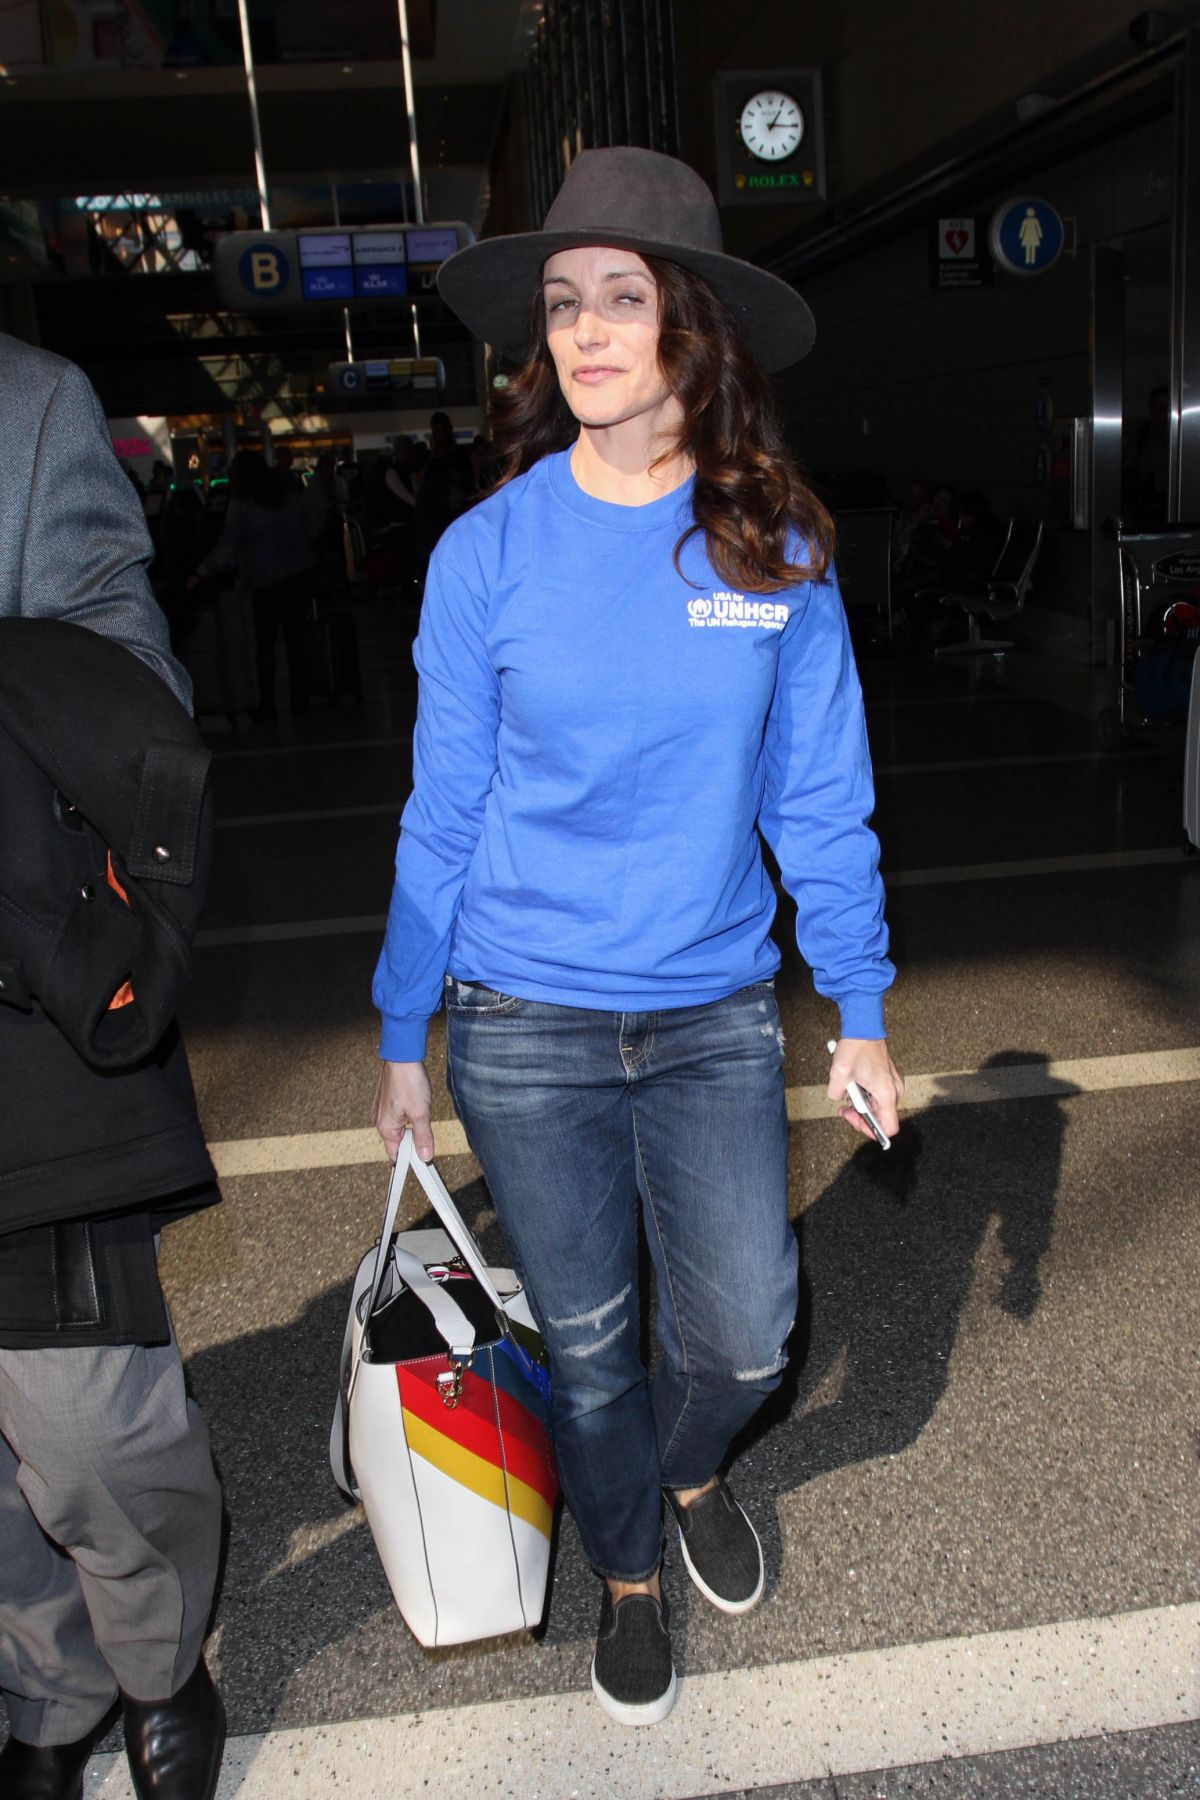 KRISTIN DAVIS at LAX Airport in Los Angeles 01/31/2017